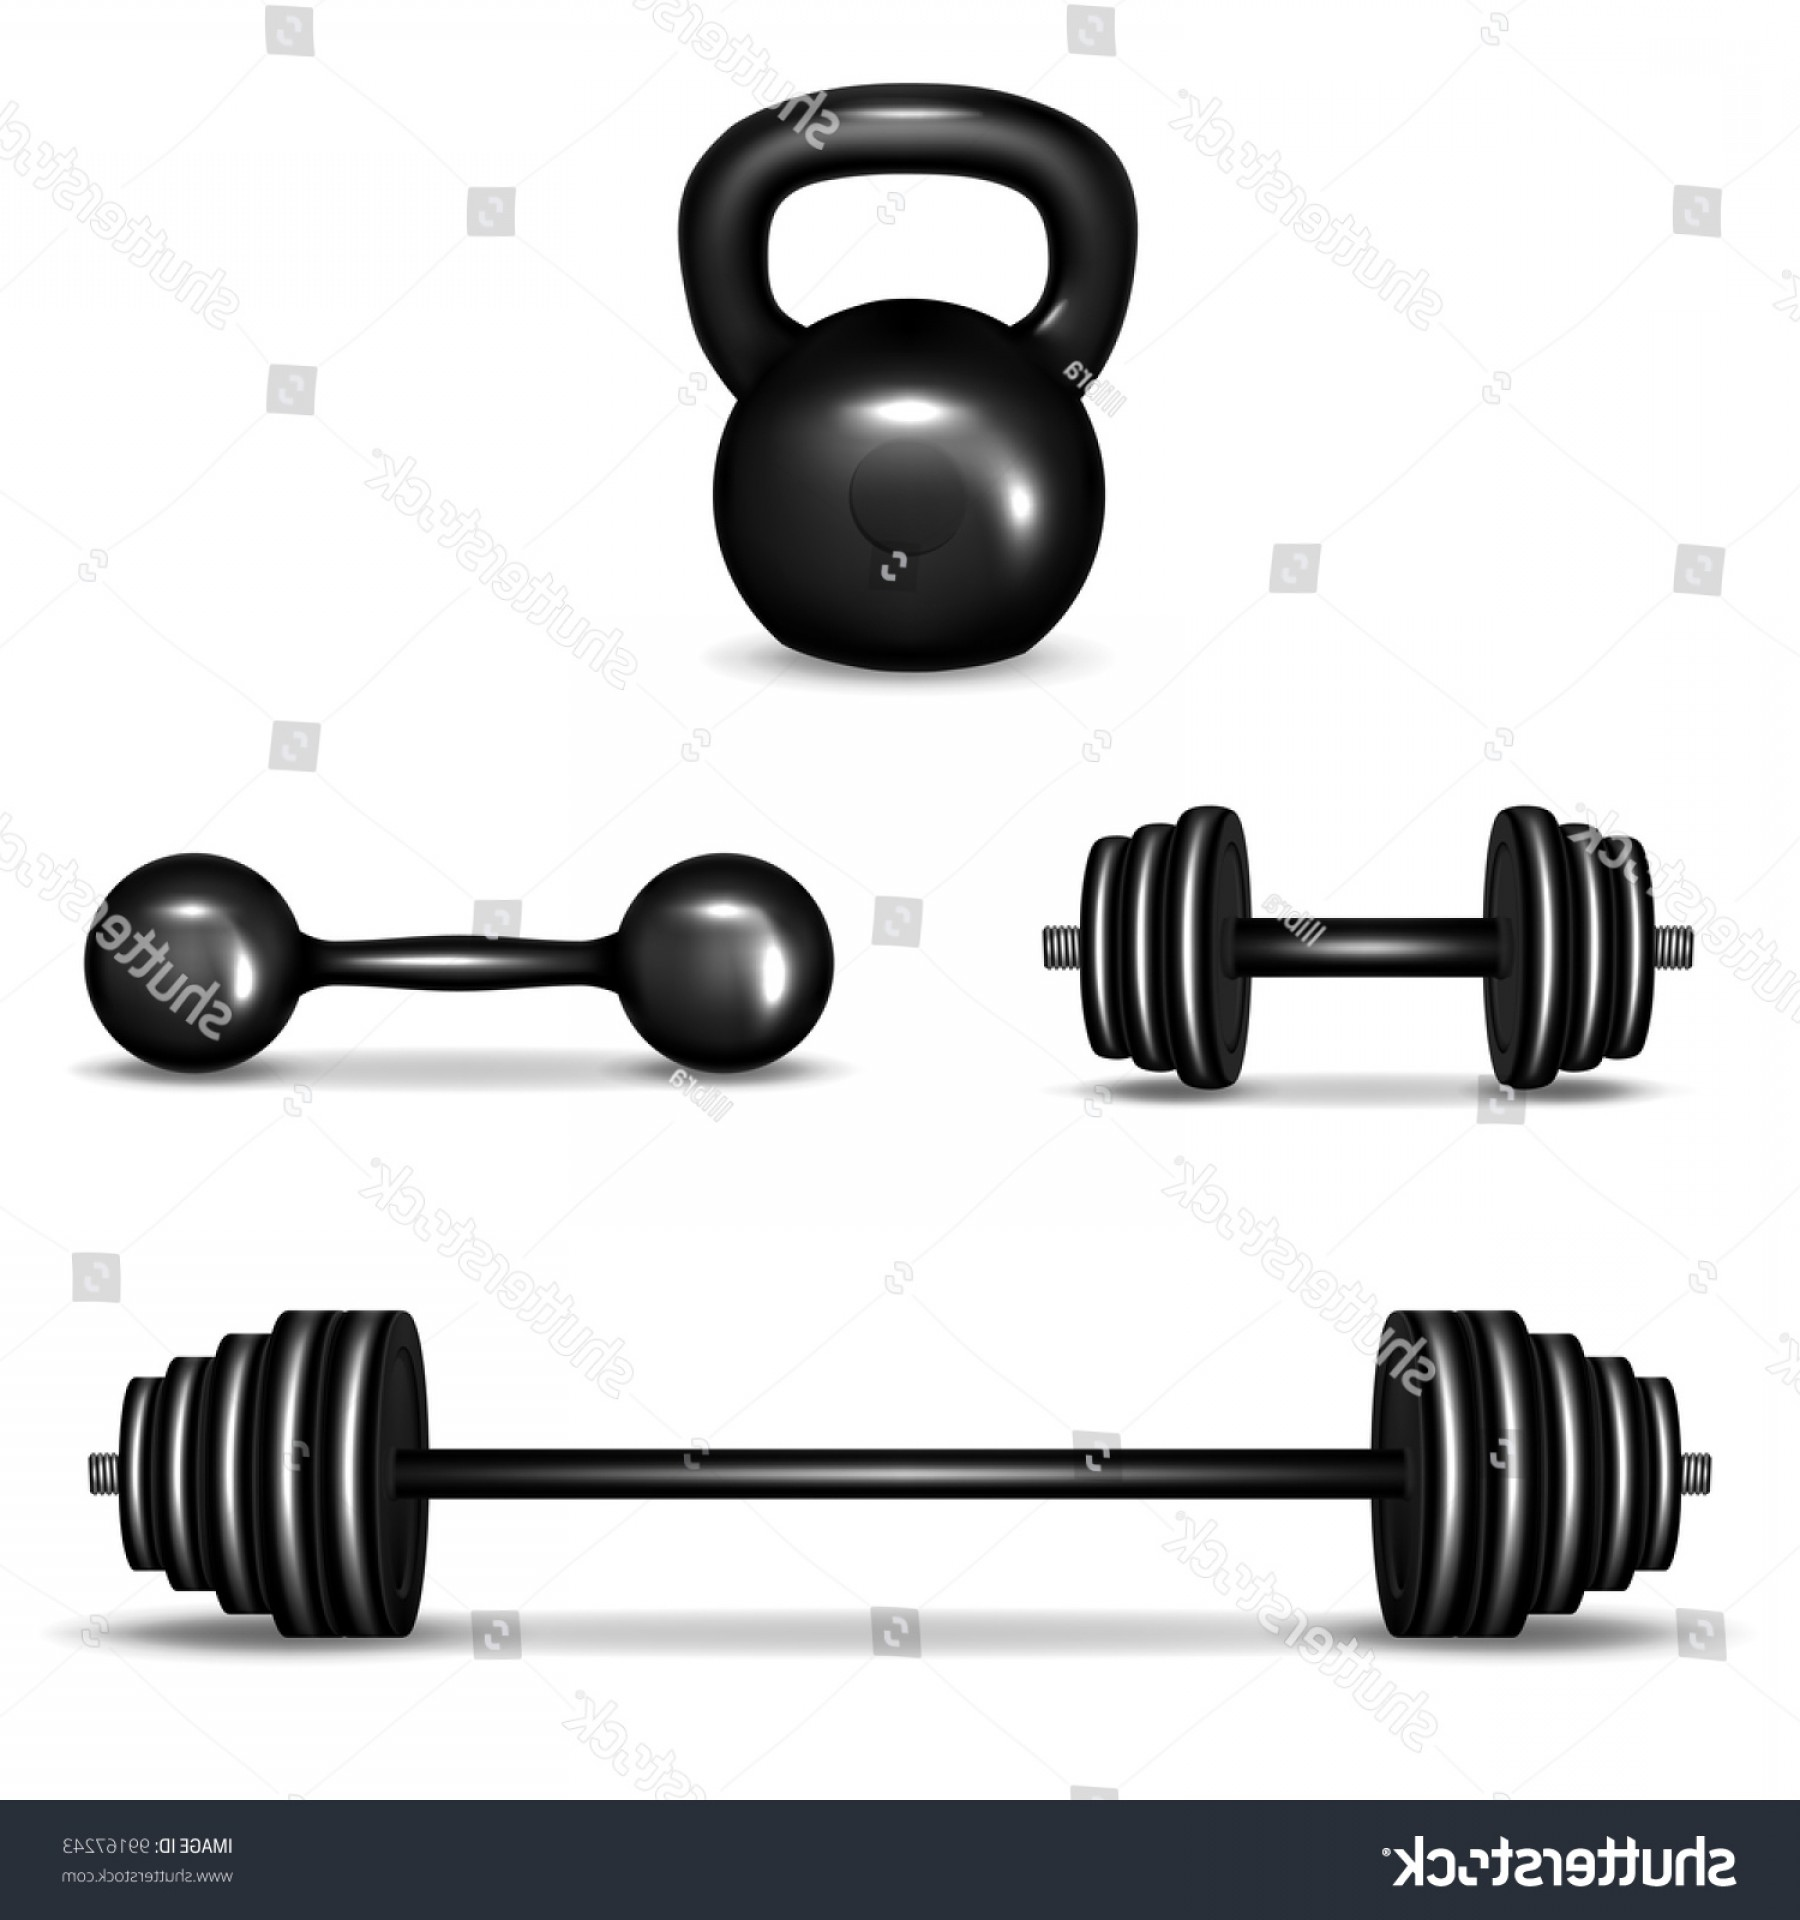 Bumper Barbell Vector: Dumbbell And Barbell Home Based Workout